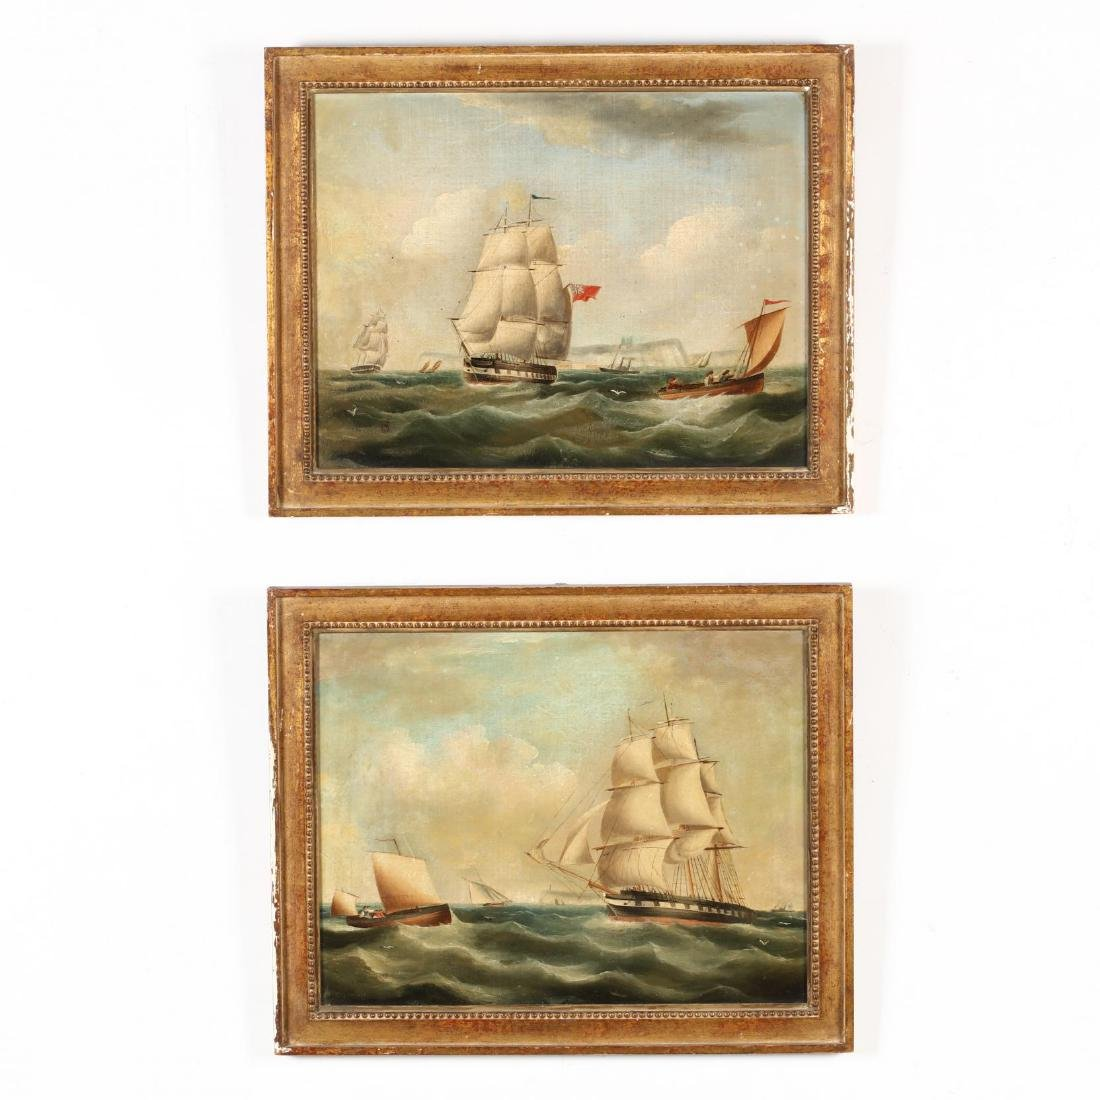 A Pair of Antique English Maritime Paintings